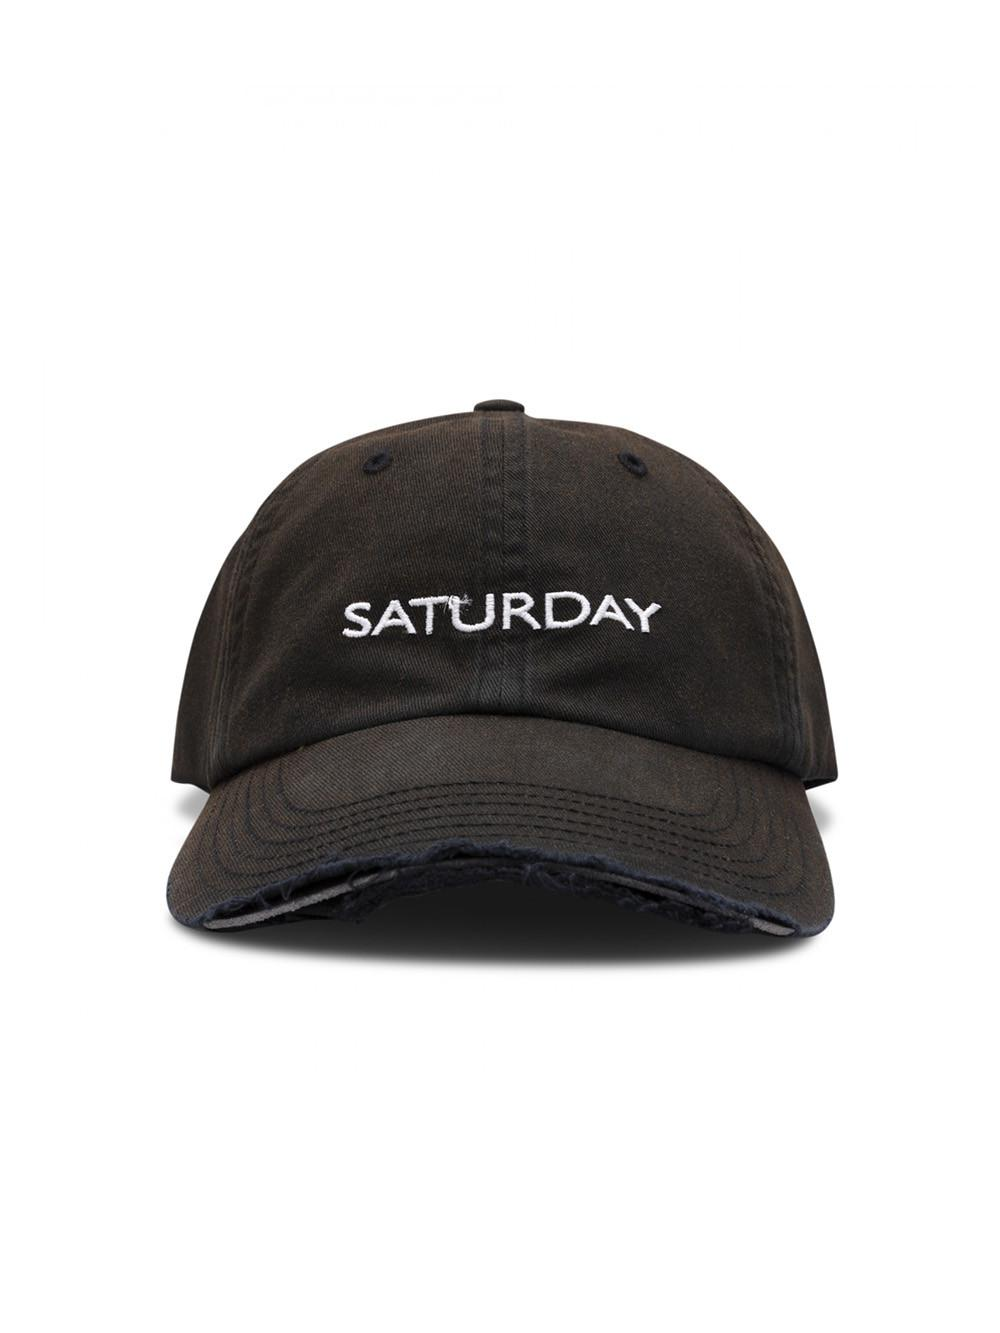 449a14c9a33e8 Vetements Weekday Cap in Brown for Men - Lyst